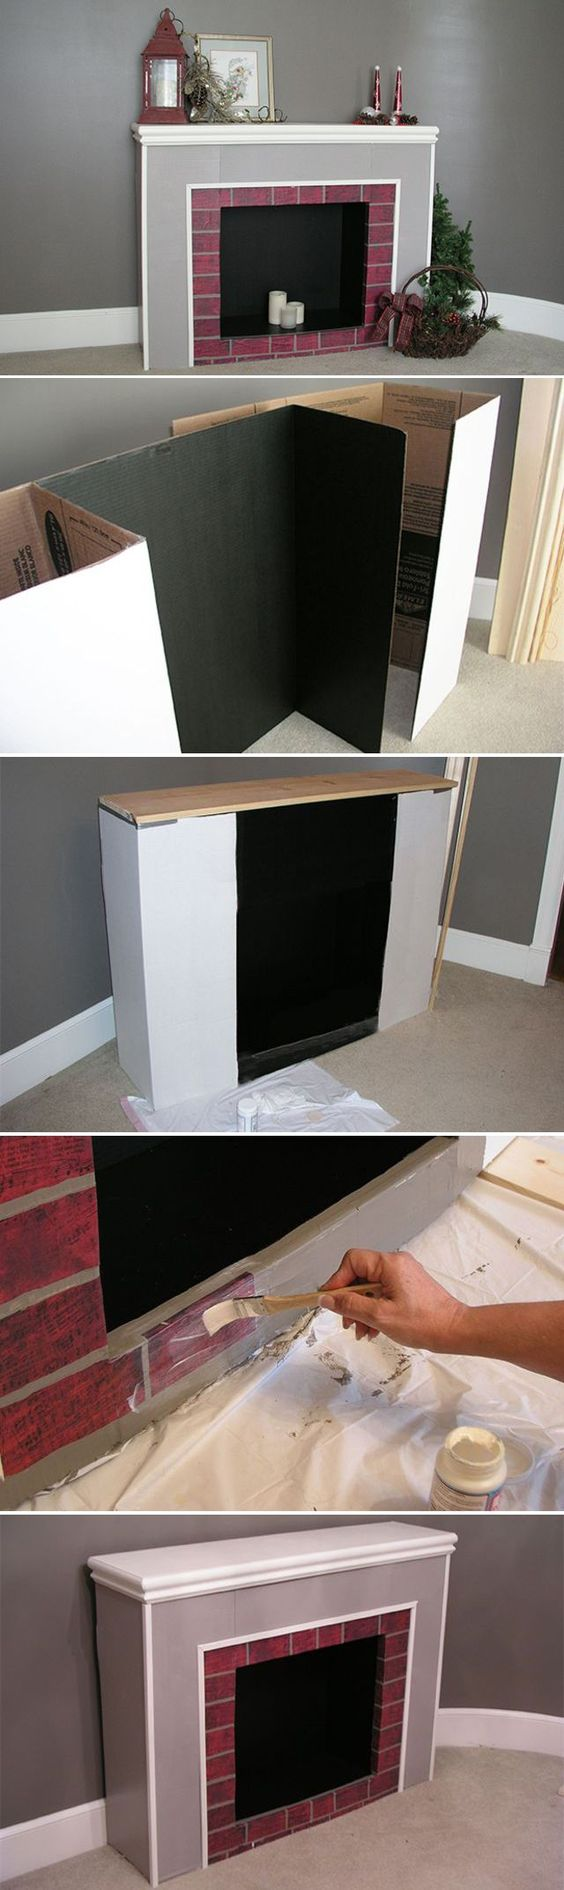 How to Make a Cardboard Christmas Fireplace - If your image of Christmas includes stockings hanging on a fireplace but your home doesn't have one, you can make a surprisingly realistic version from cardboard. Start with four cardboard display boards -- the kind students use for science projects. You can find them at hobby or office supply stores and home centers.